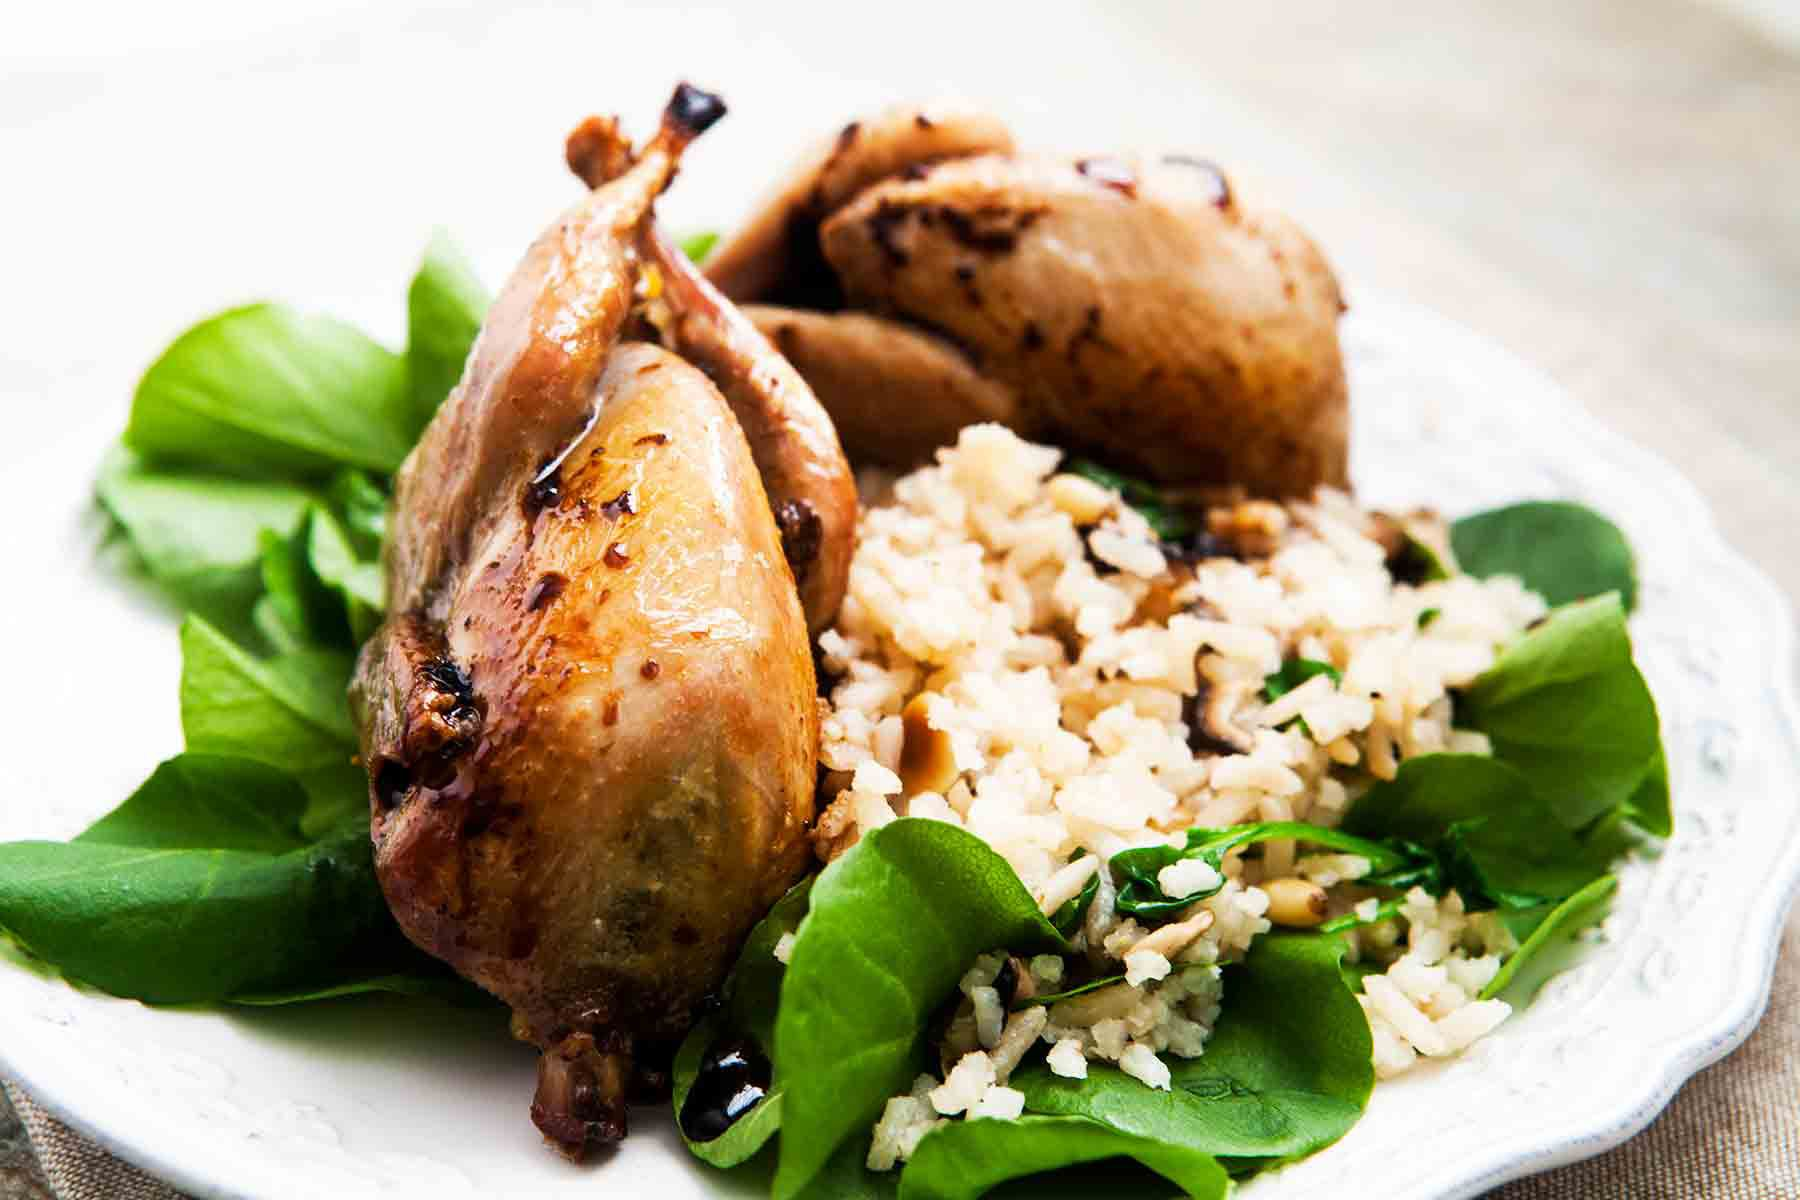 Roast Quail with Balsamic Reduction